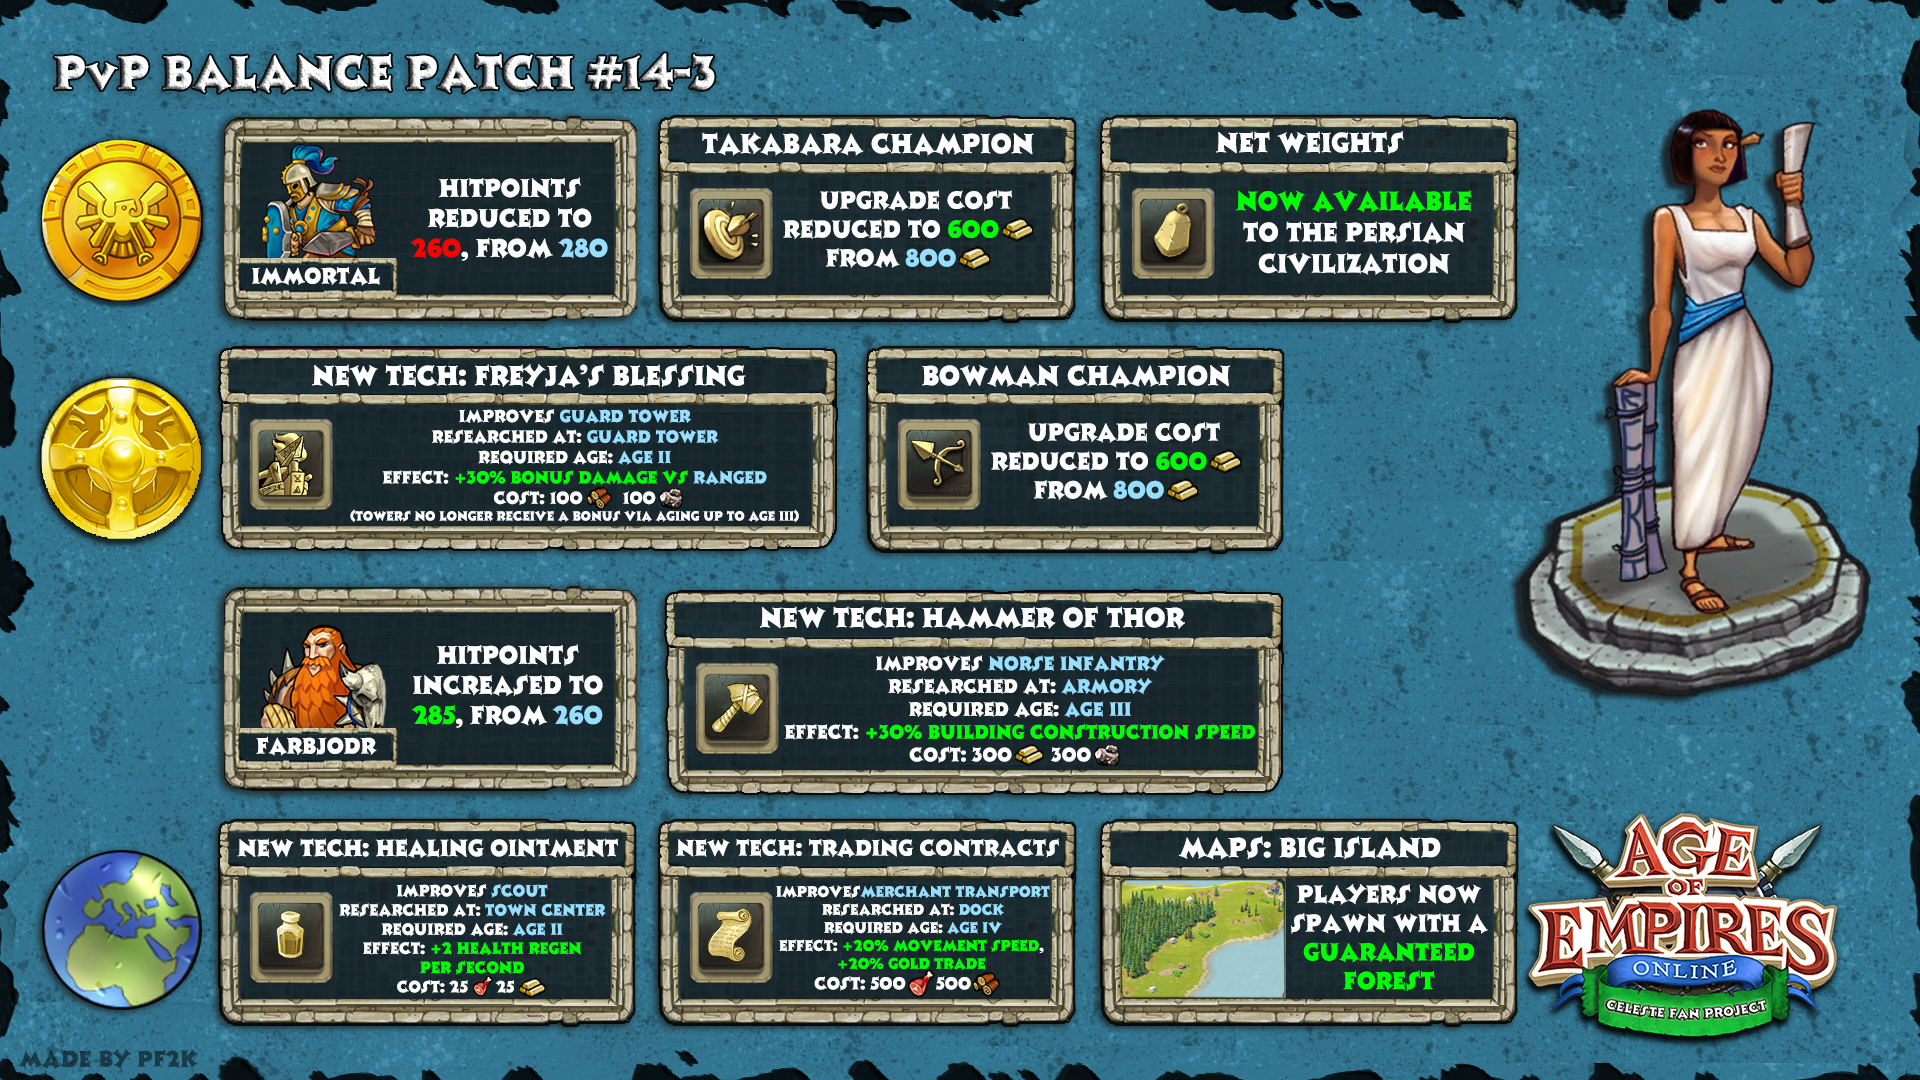 Patch14-3.png